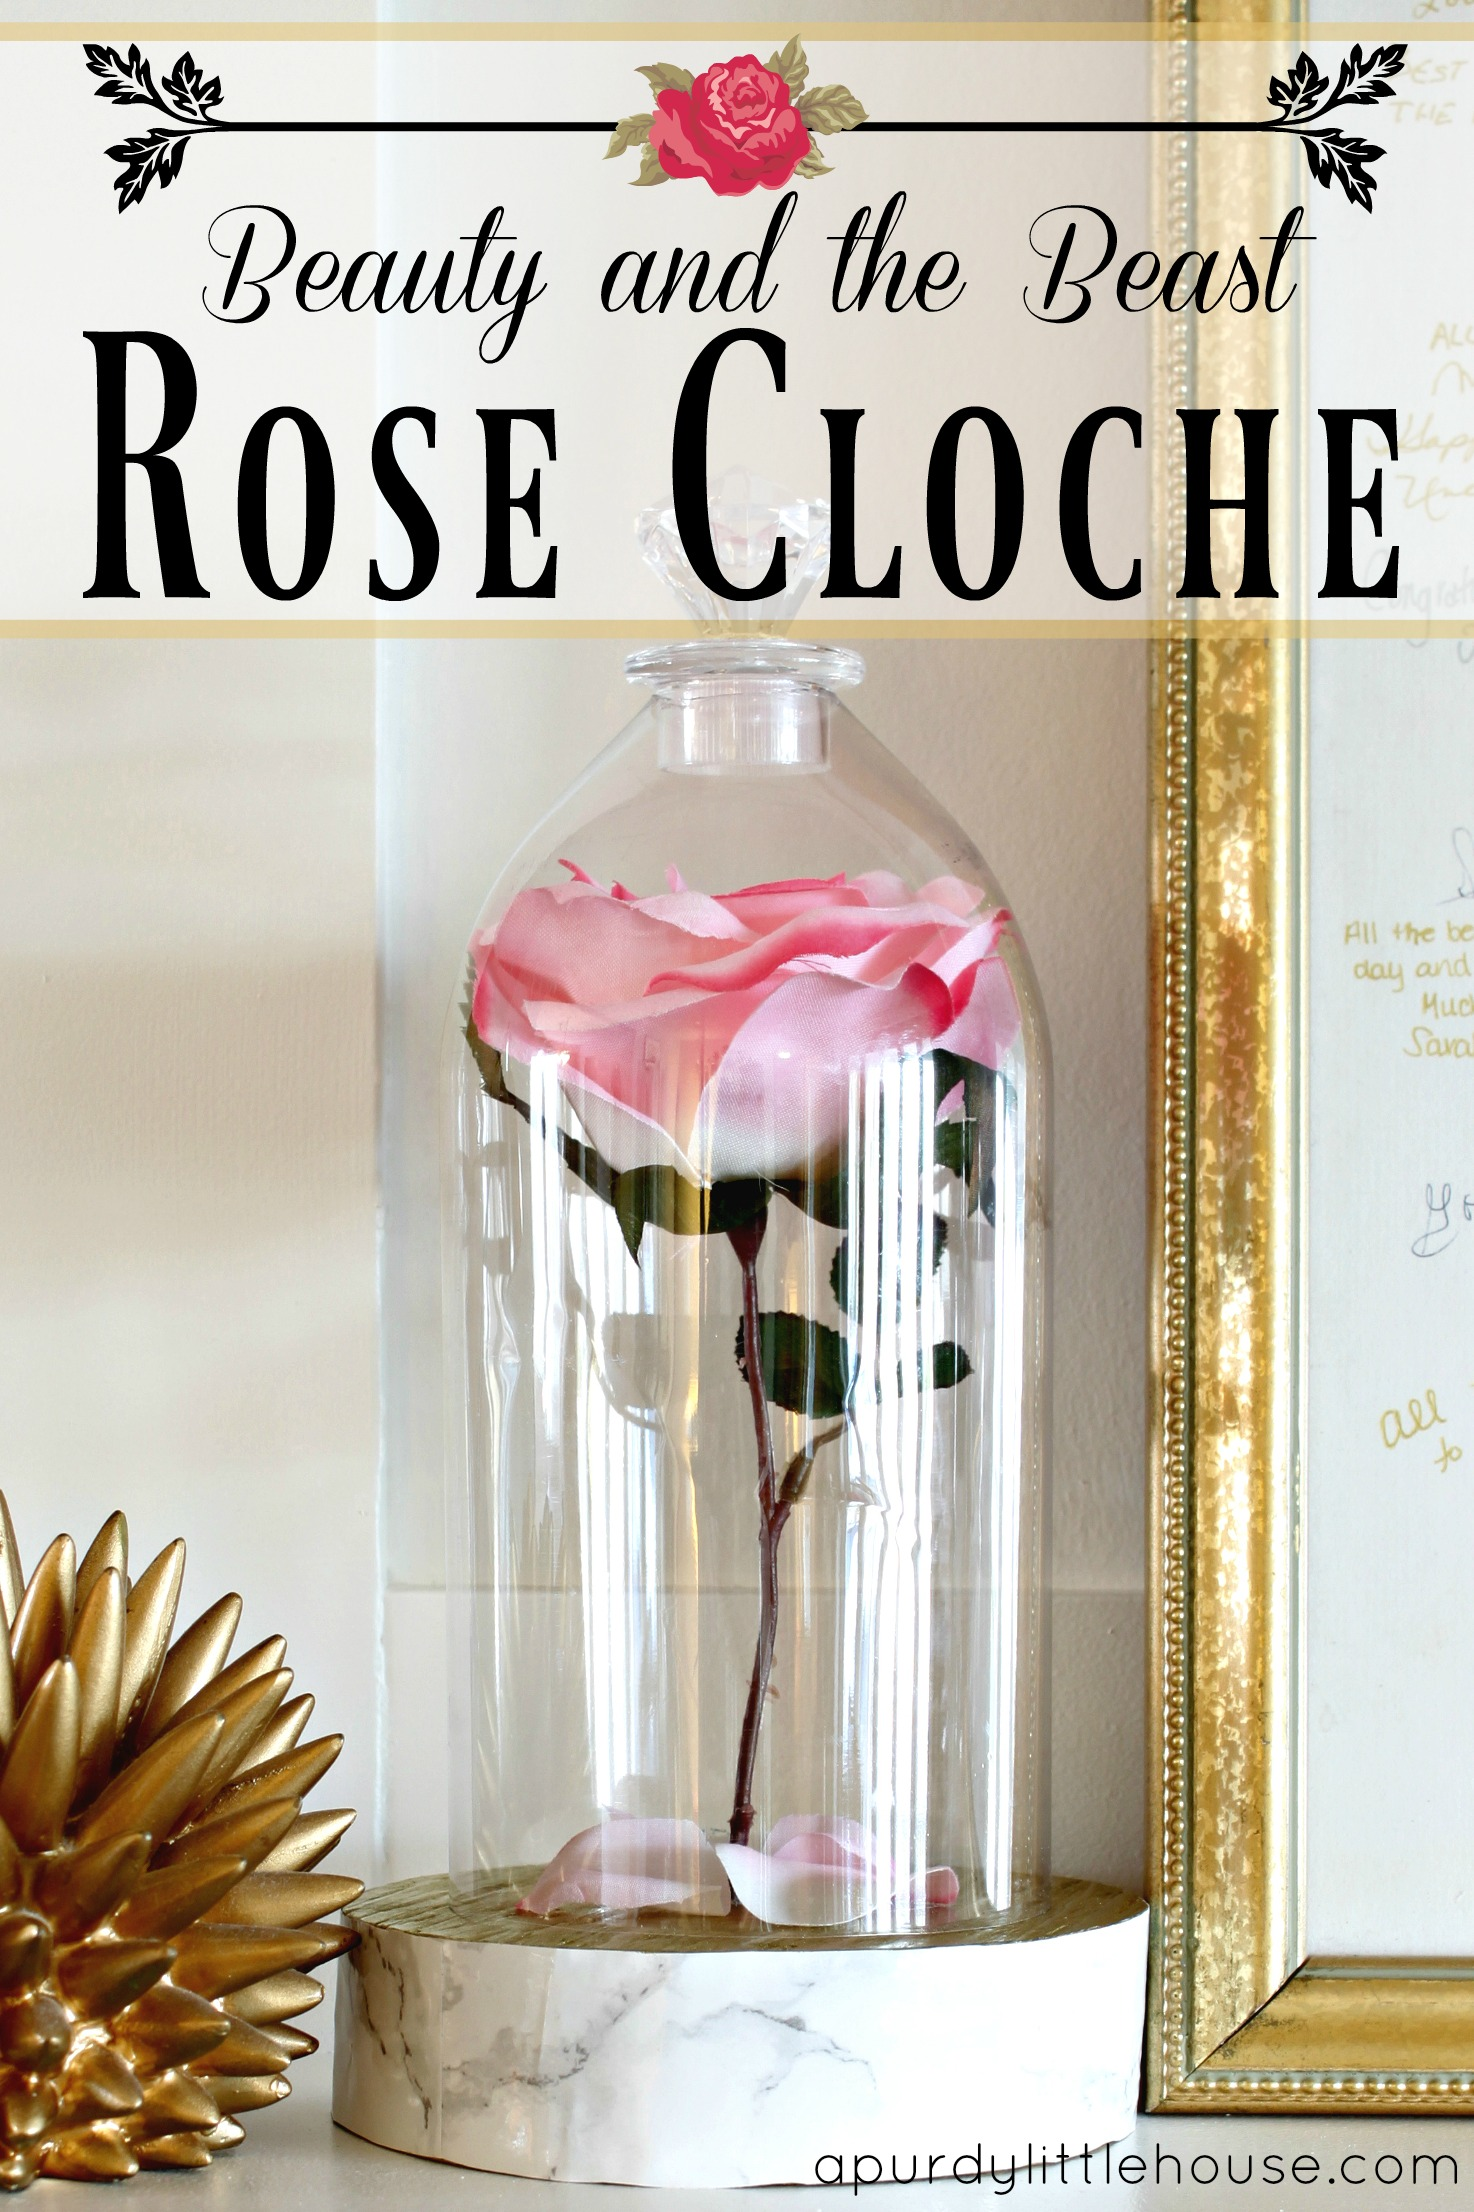 Beauty and the Beast Inspired Rose Cloche. See how I made this easy cloche out of a plastic pop bottle perfect for a Beauty and the Beast Party